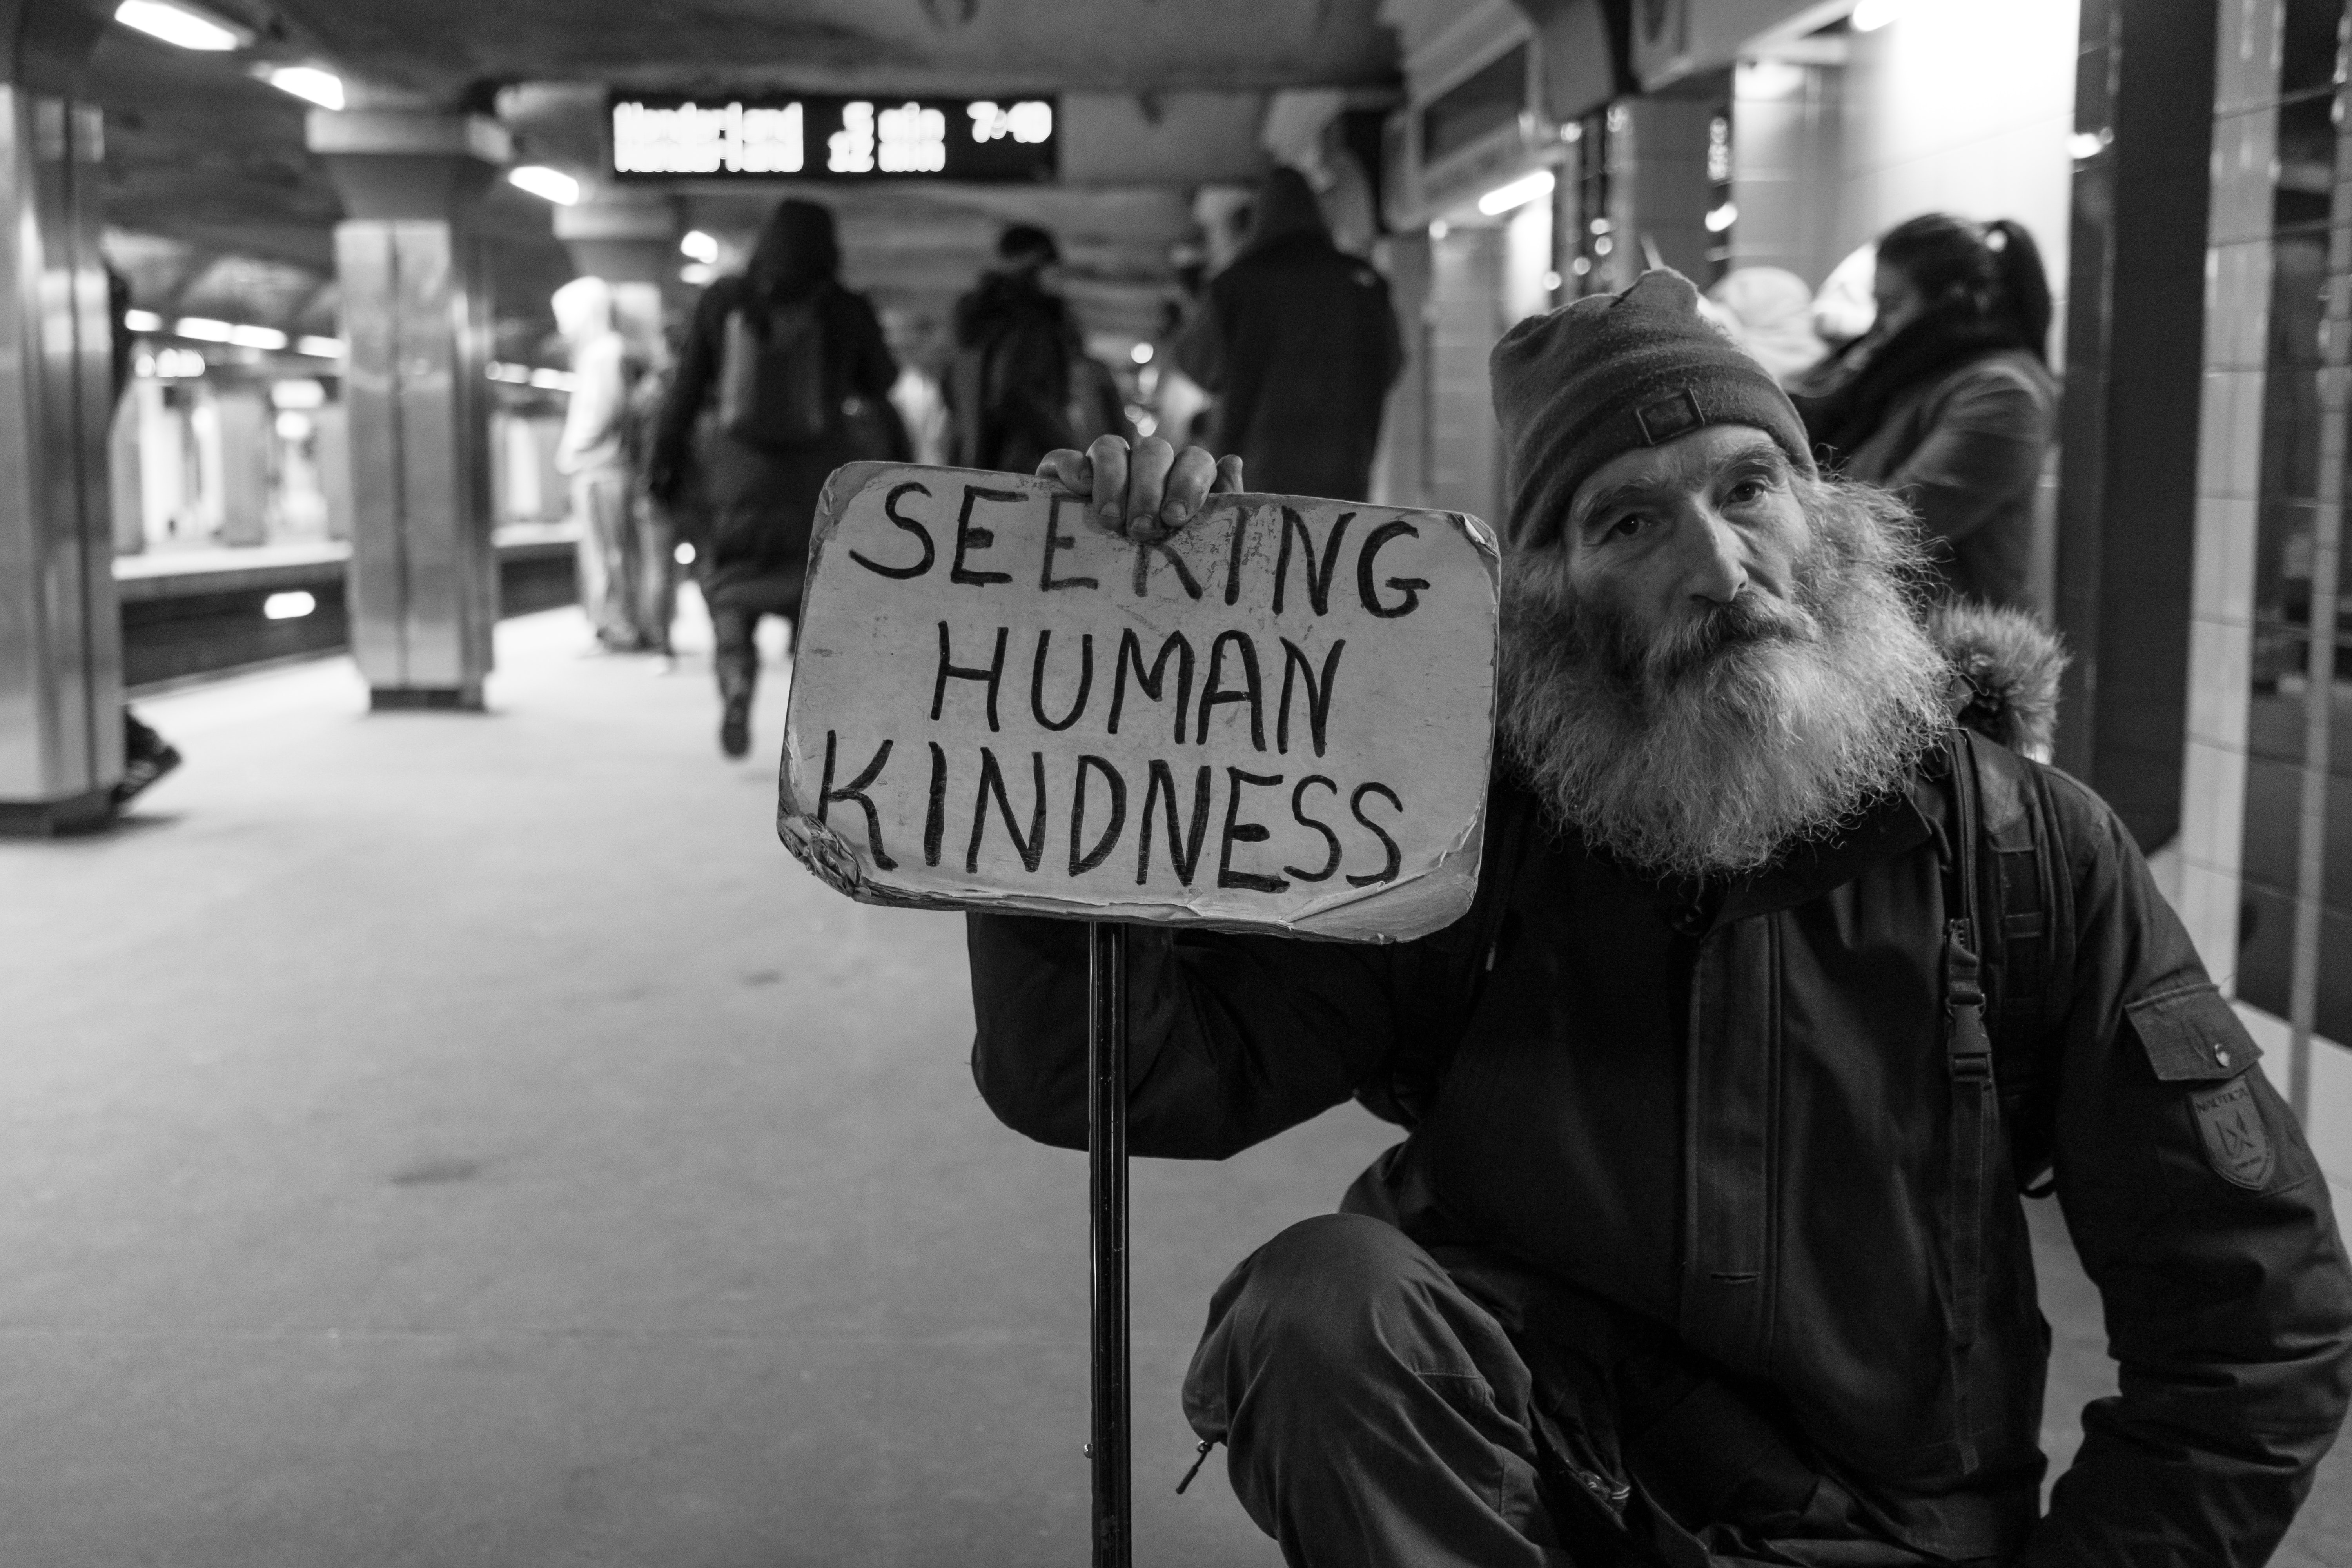 VIEW OTHER PEOPLE'S MONEY CHOICES WITH COMPASSION